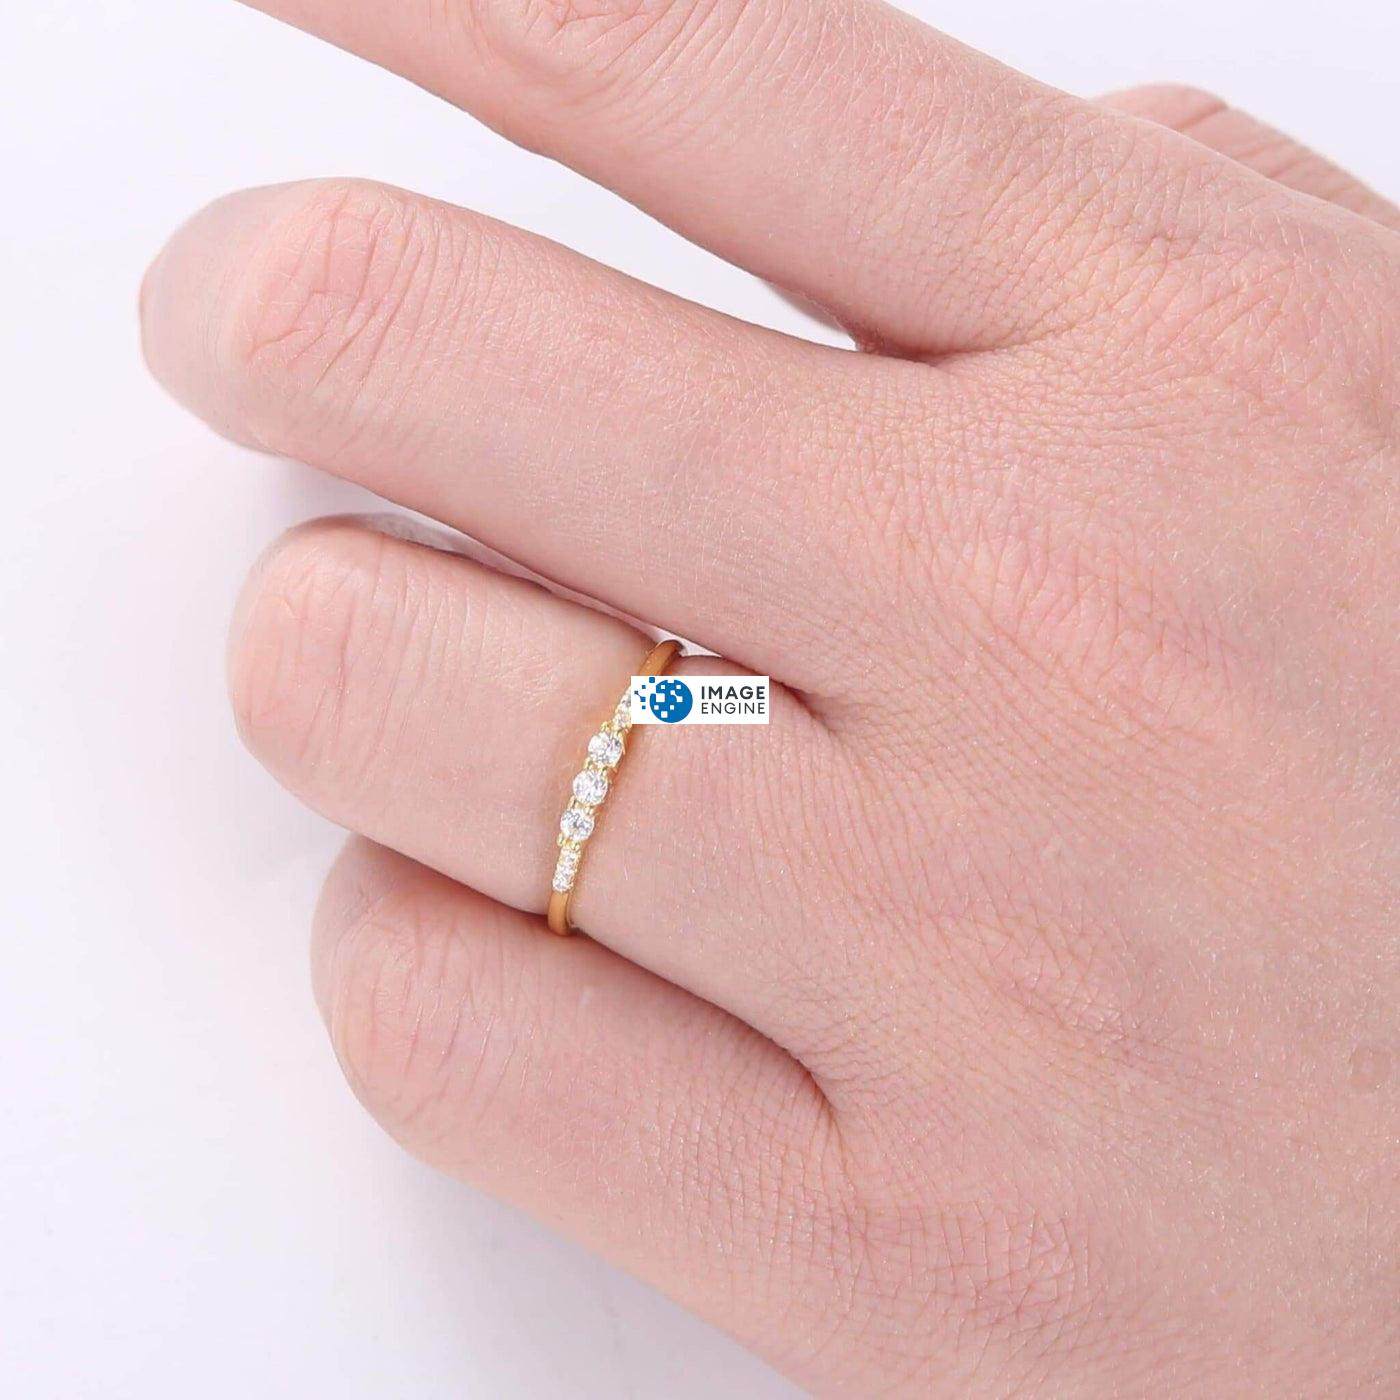 Emie Ring - Wearing on Ring Finger on Higher Angle View - 18K Yellow Gold Vermeil